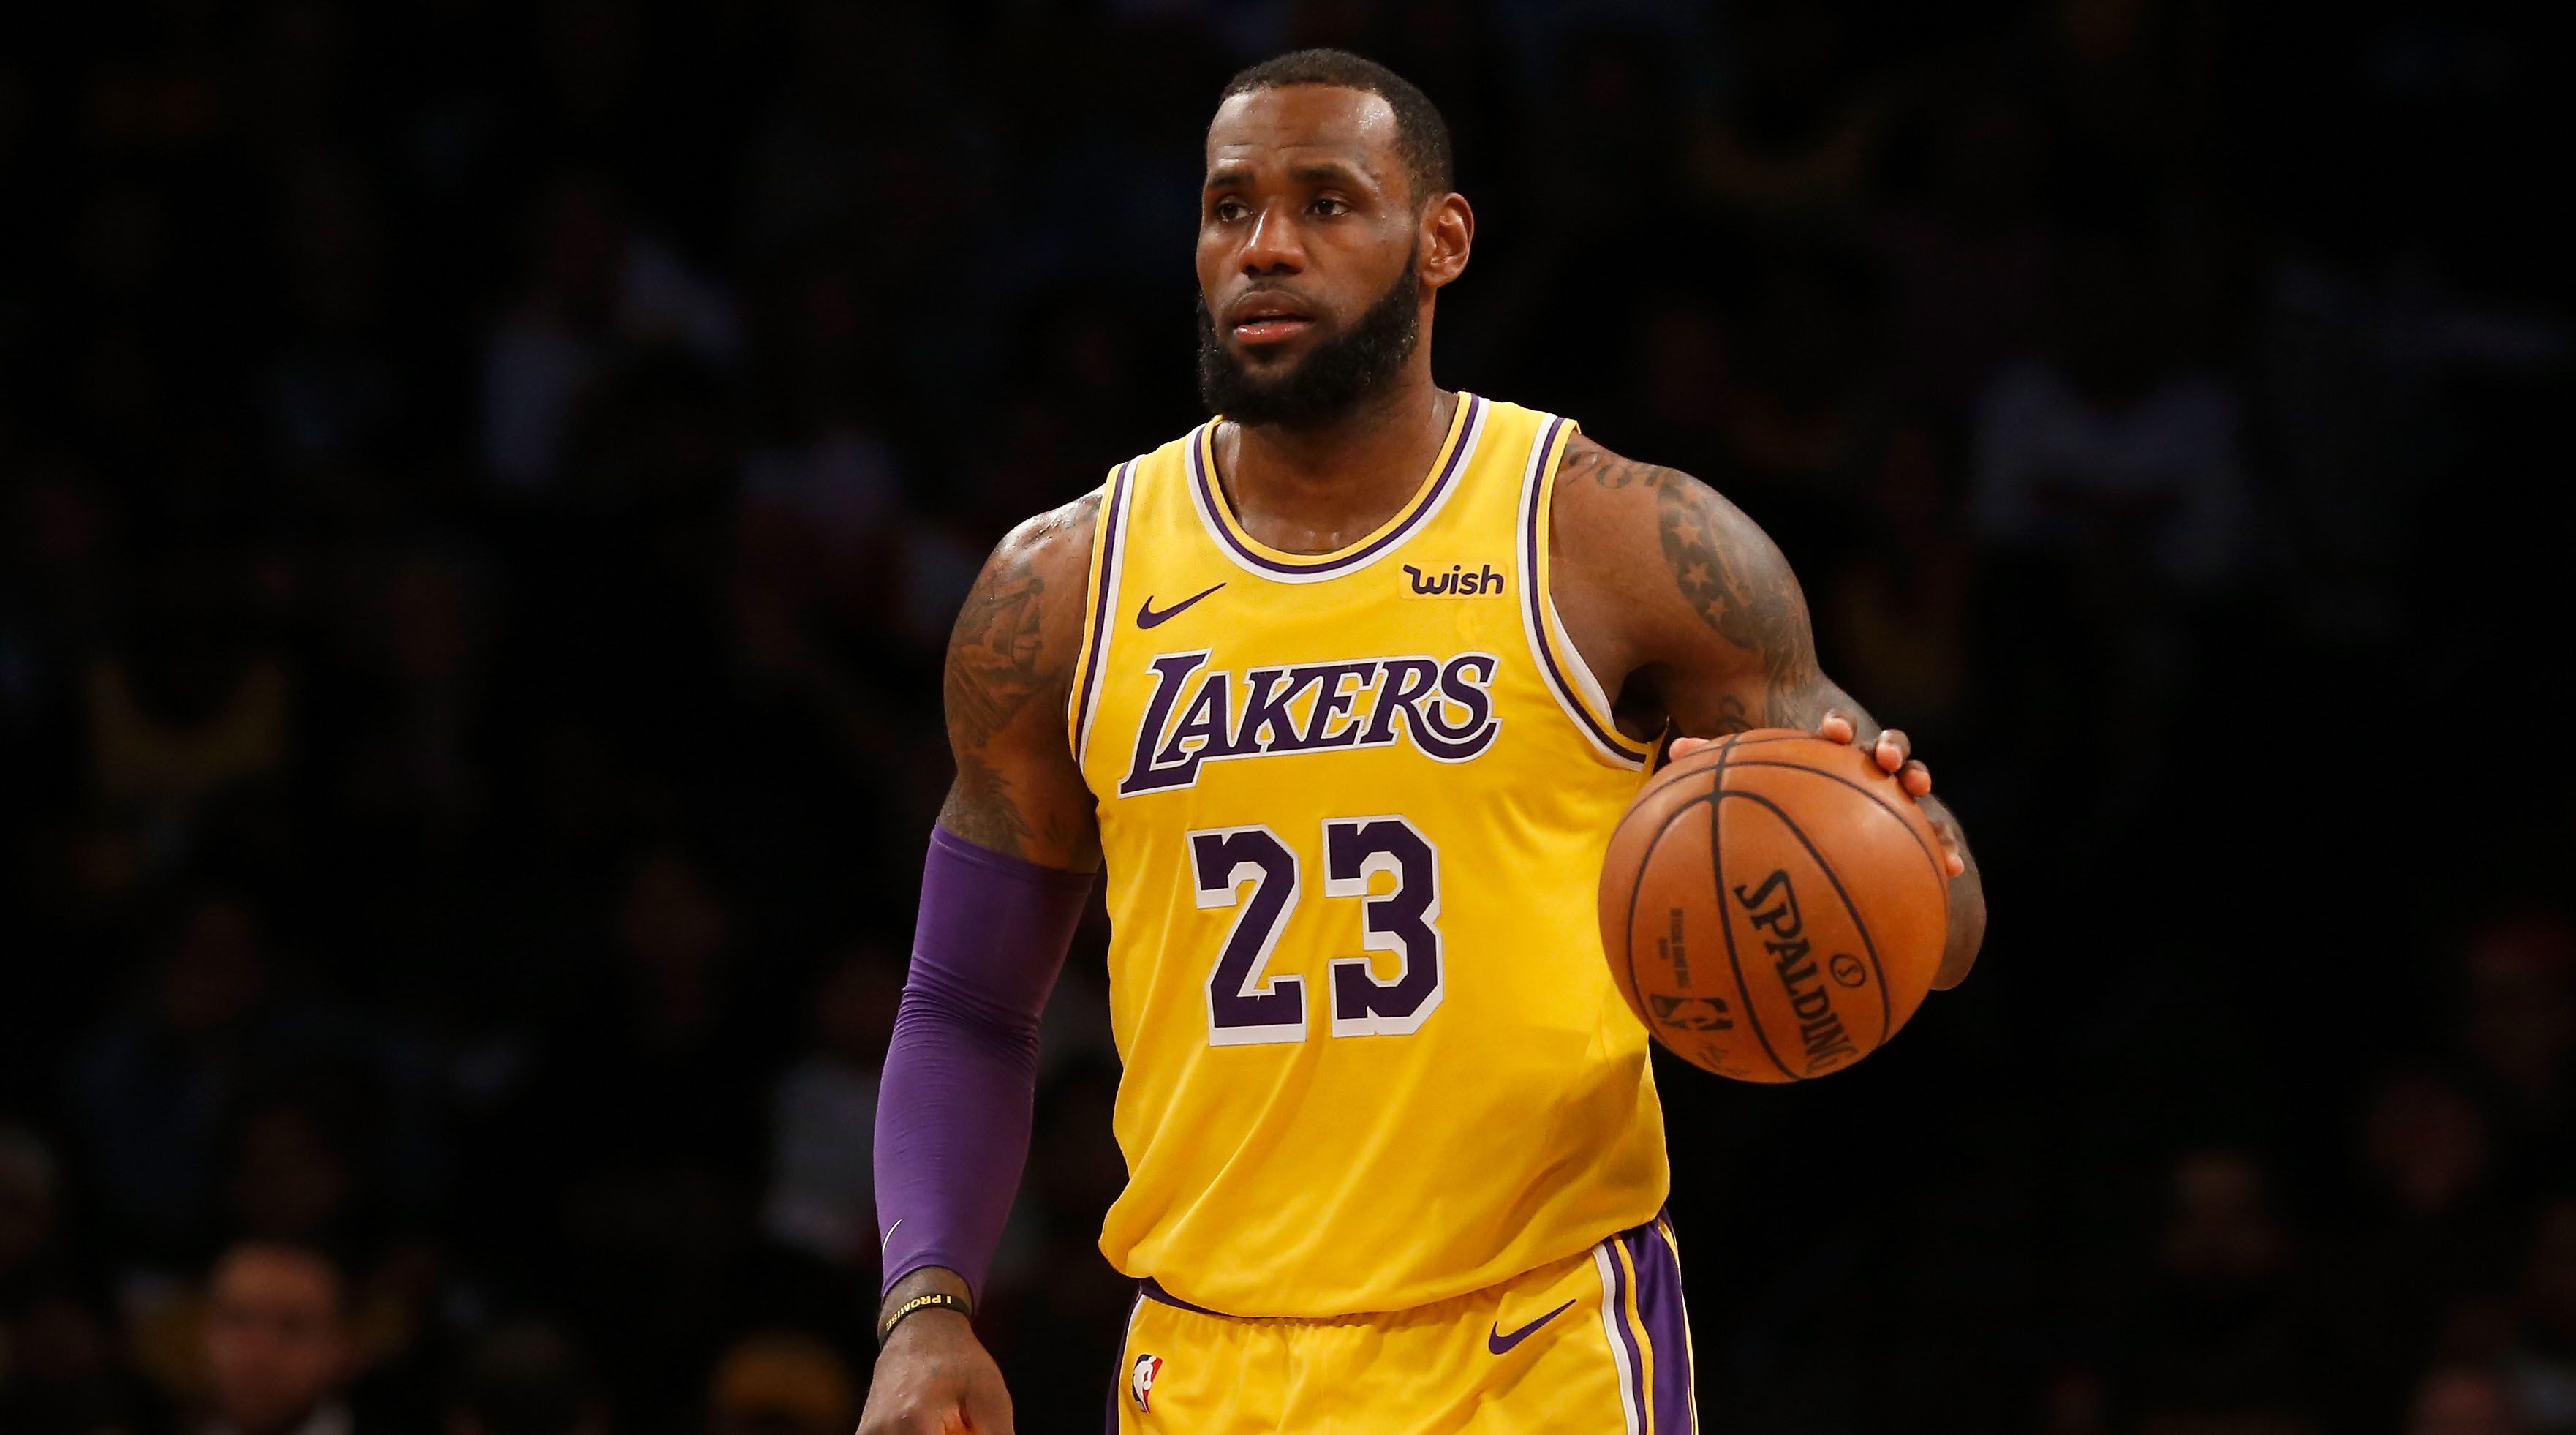 LeBron James leads pack in early All-Star voting